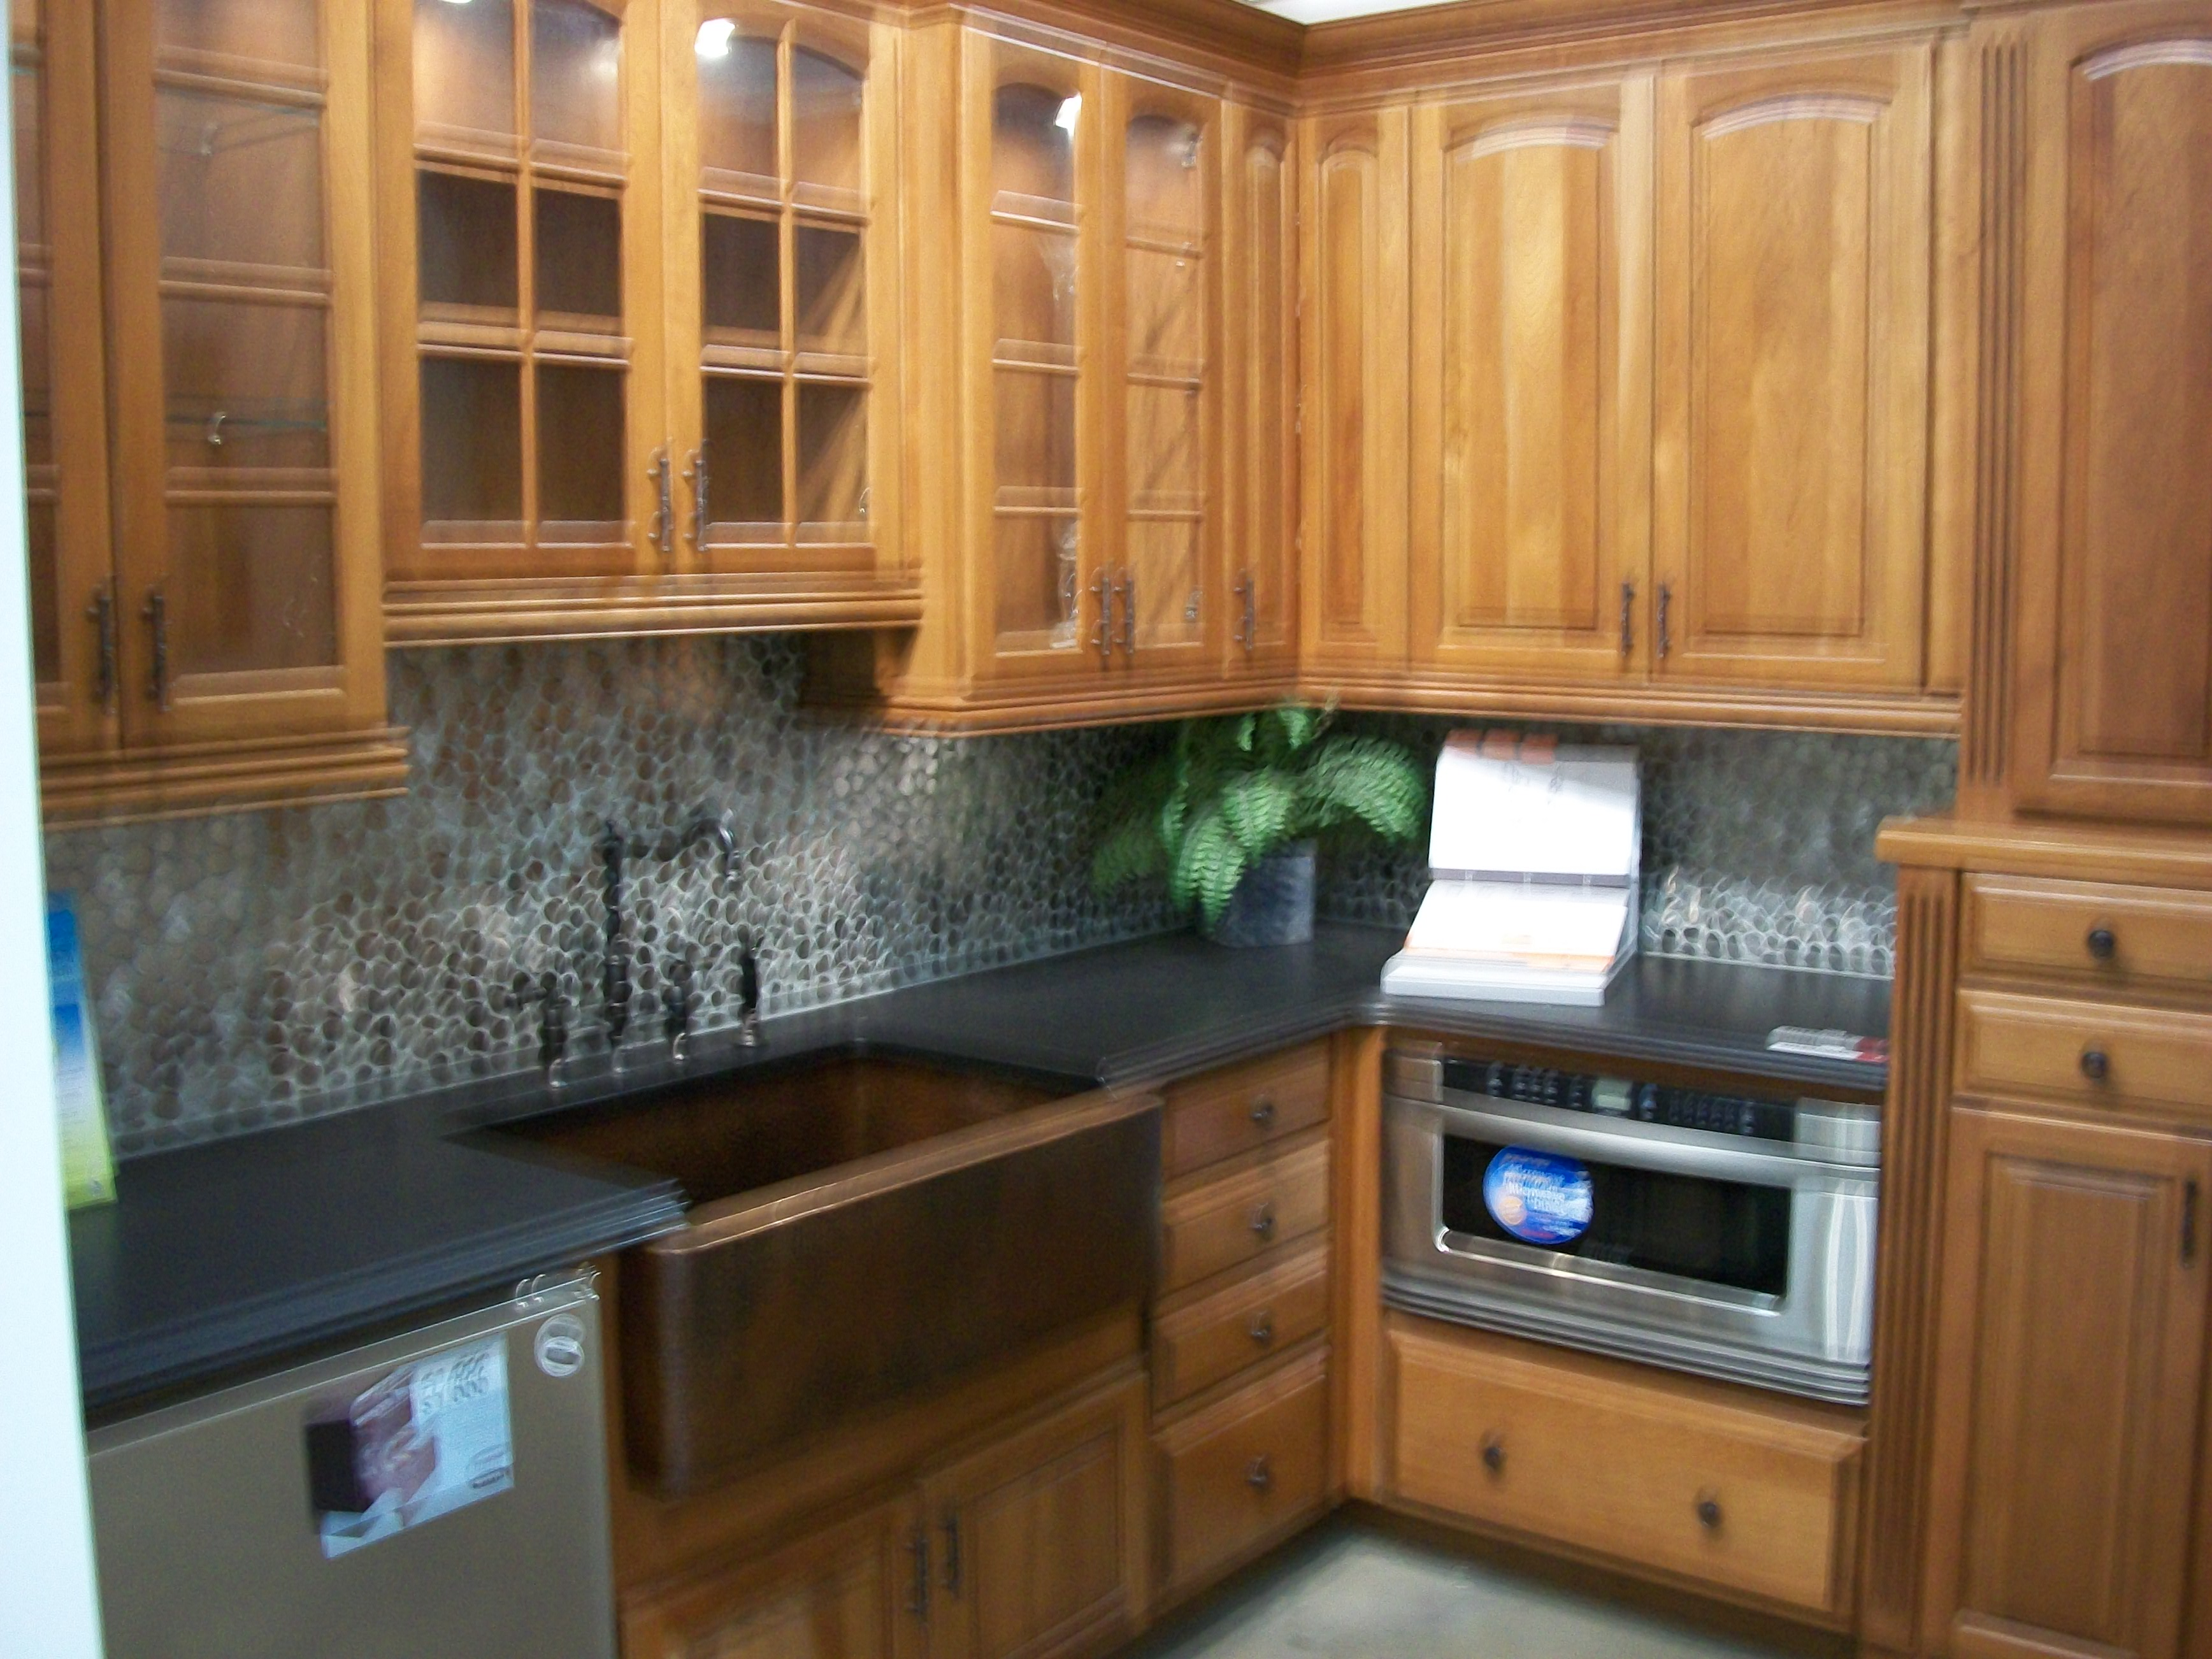 Fabulous Kitchen CabiDisplays 3472 x 2604 · 1463 kB · jpeg